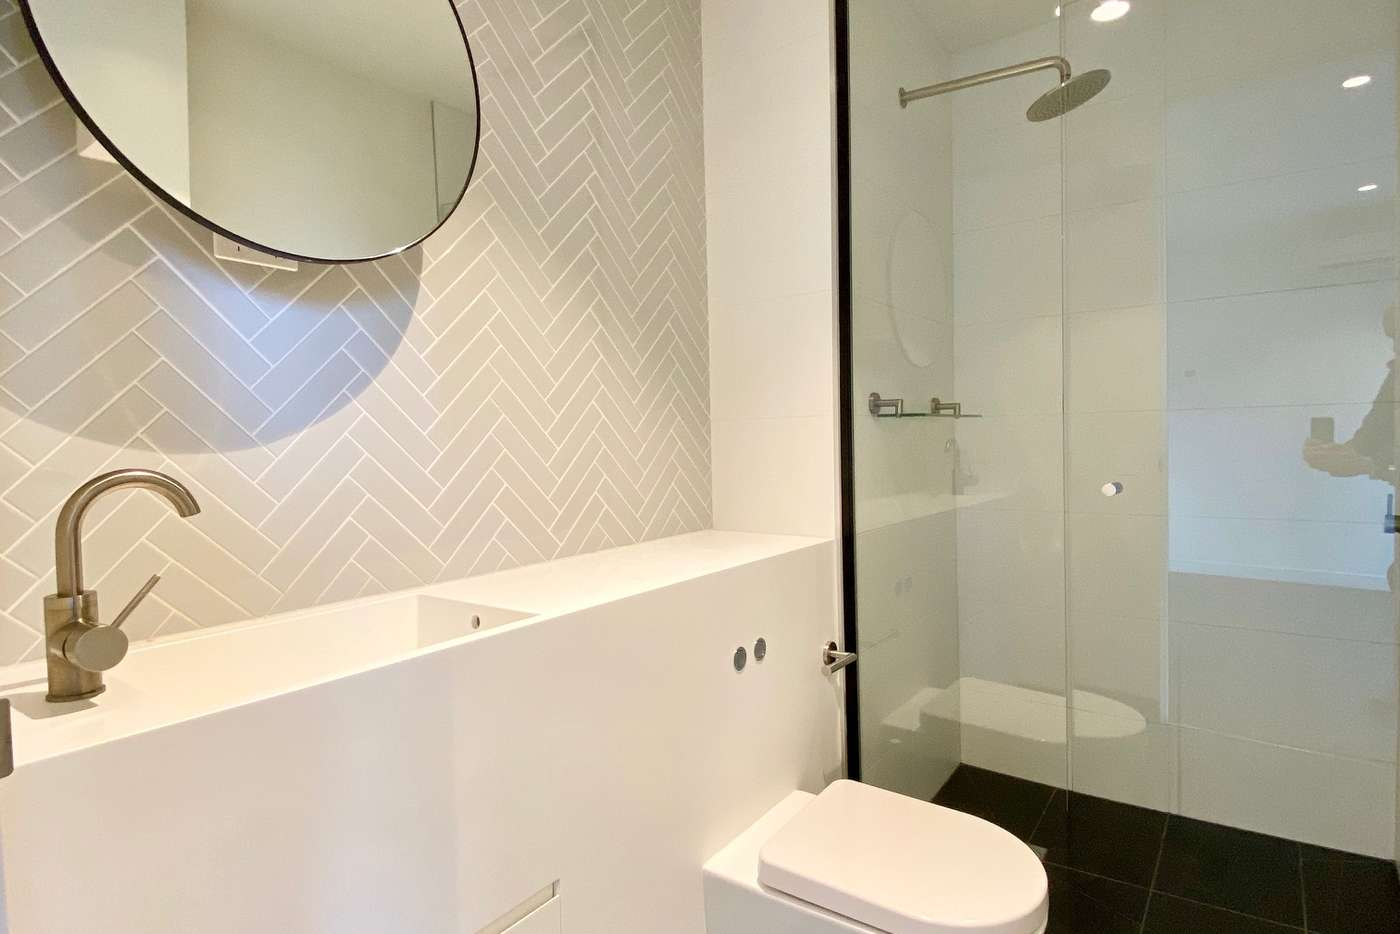 Fifth view of Homely apartment listing, 2407/135 A'Beckett St, Melbourne VIC 3000